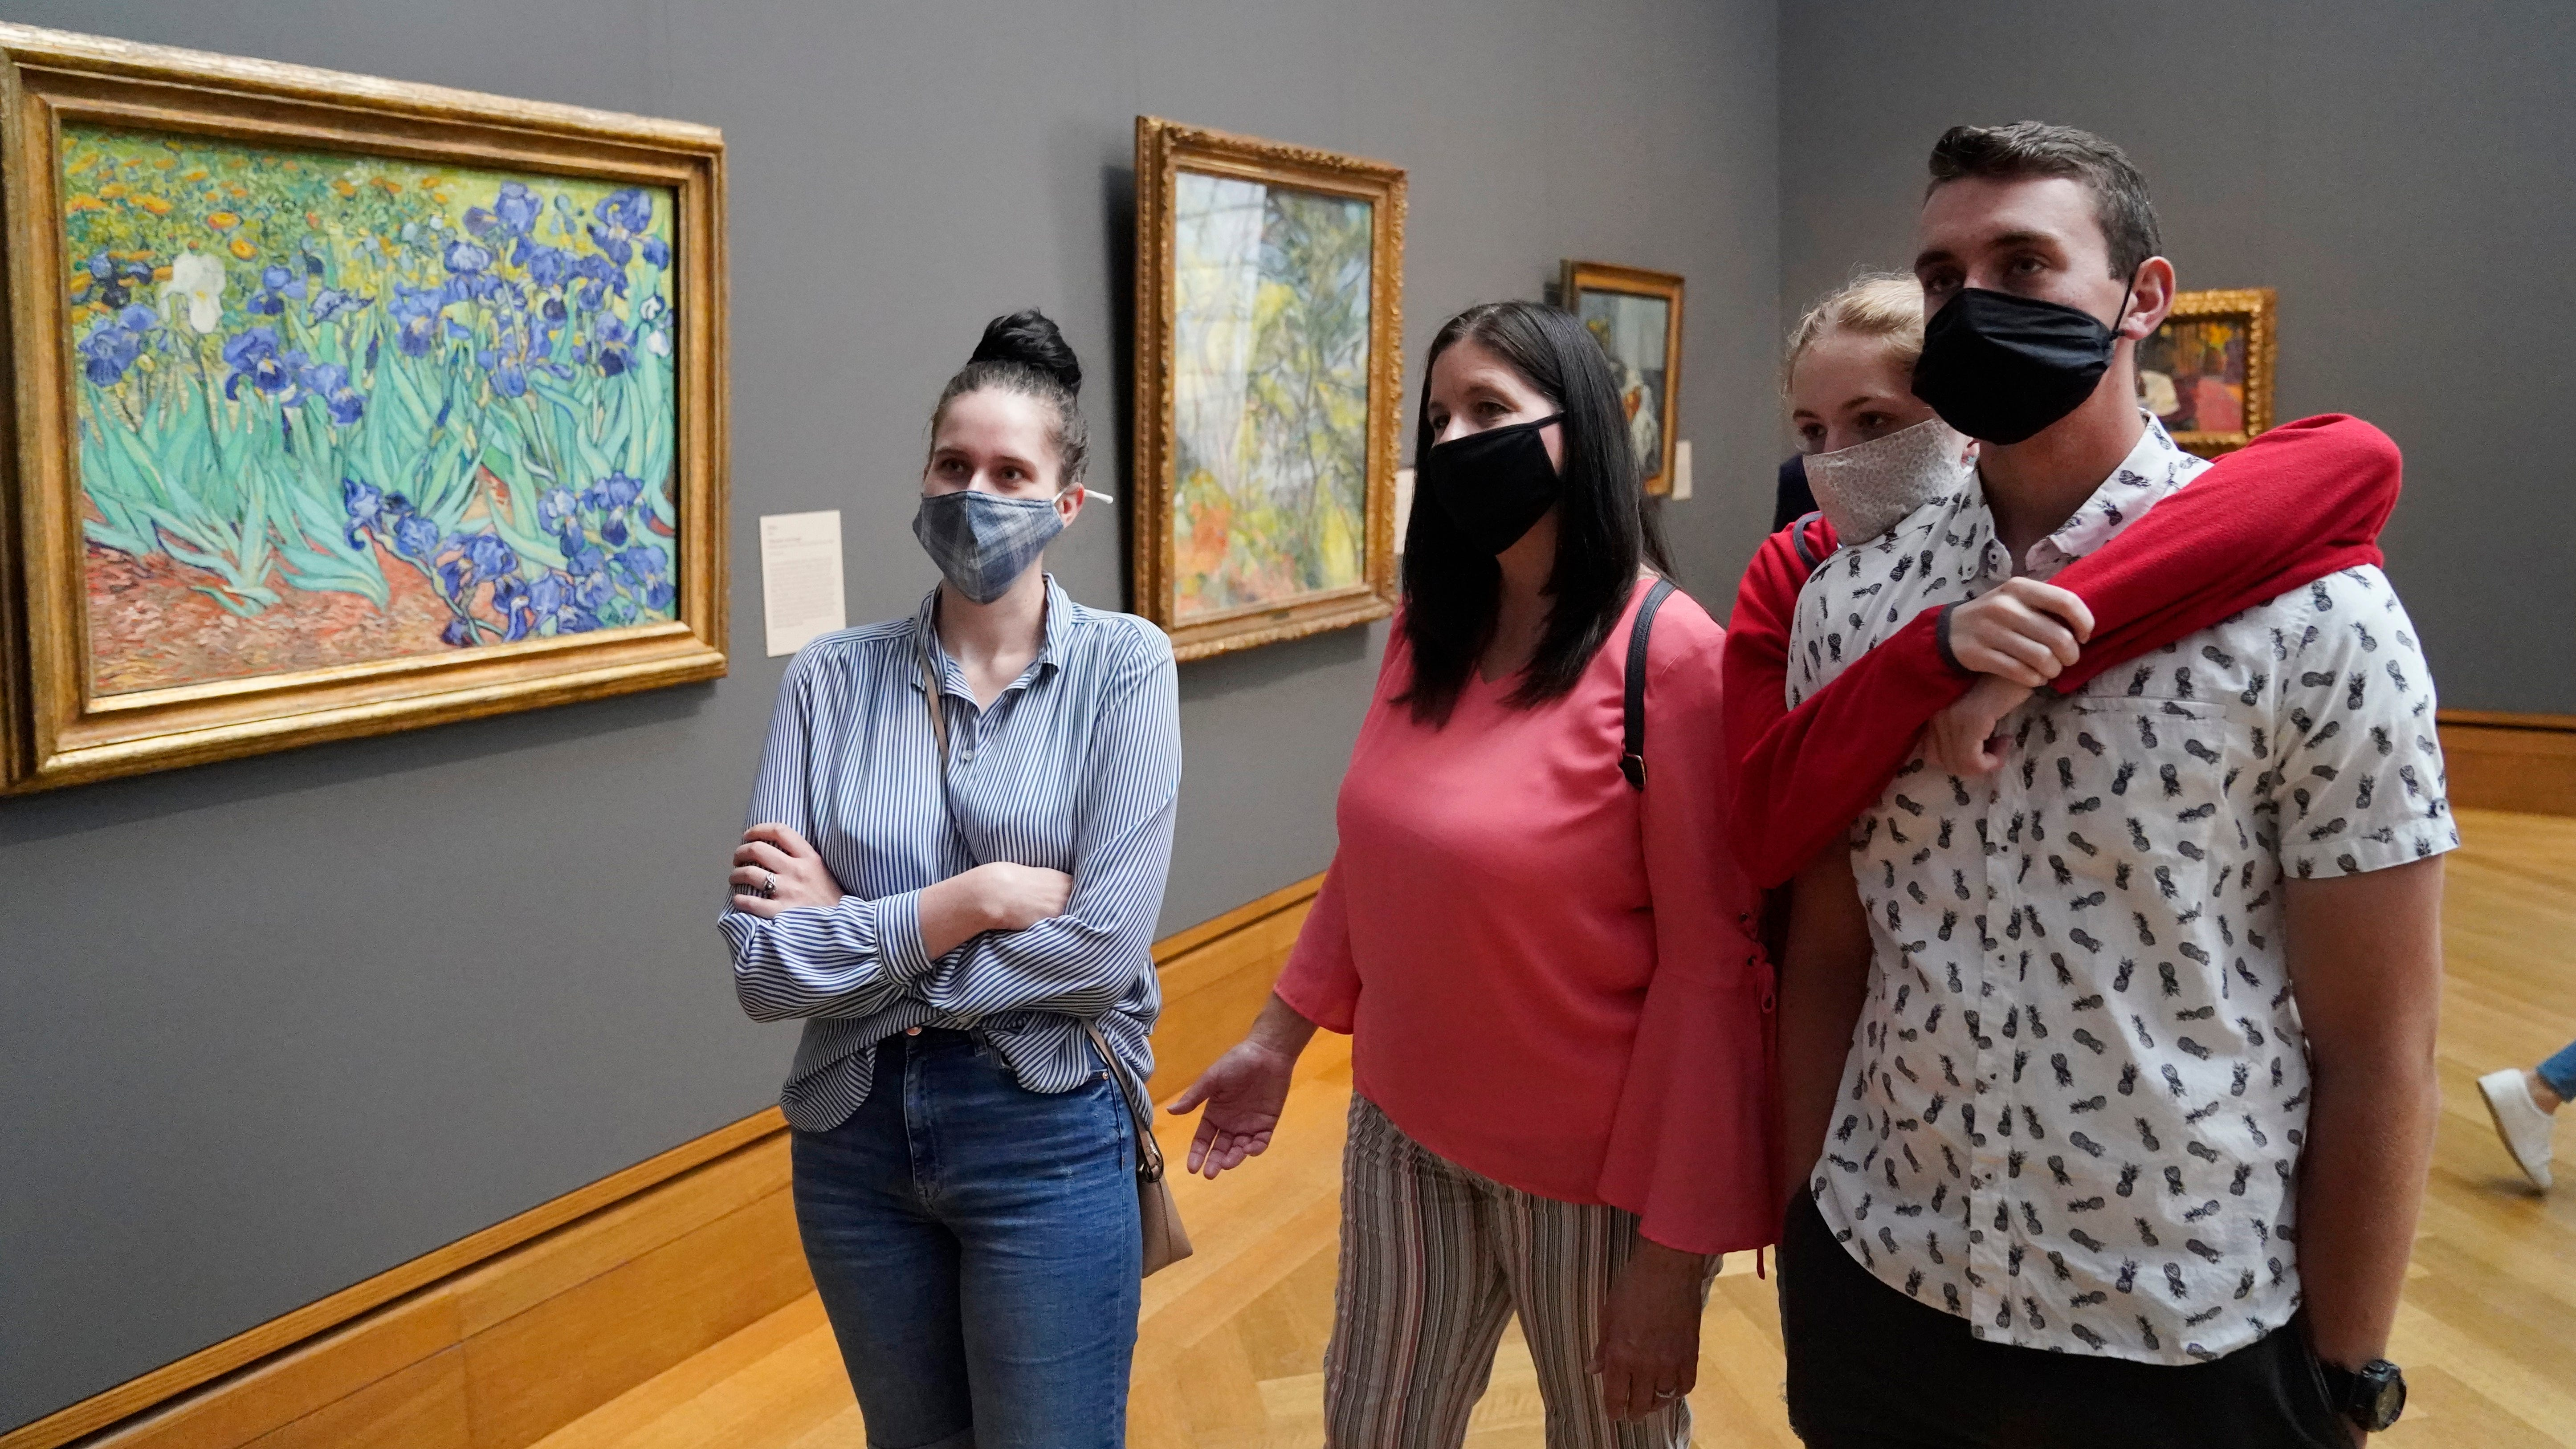 Visitors wear masks as they view art, including Vincent van Gogh's